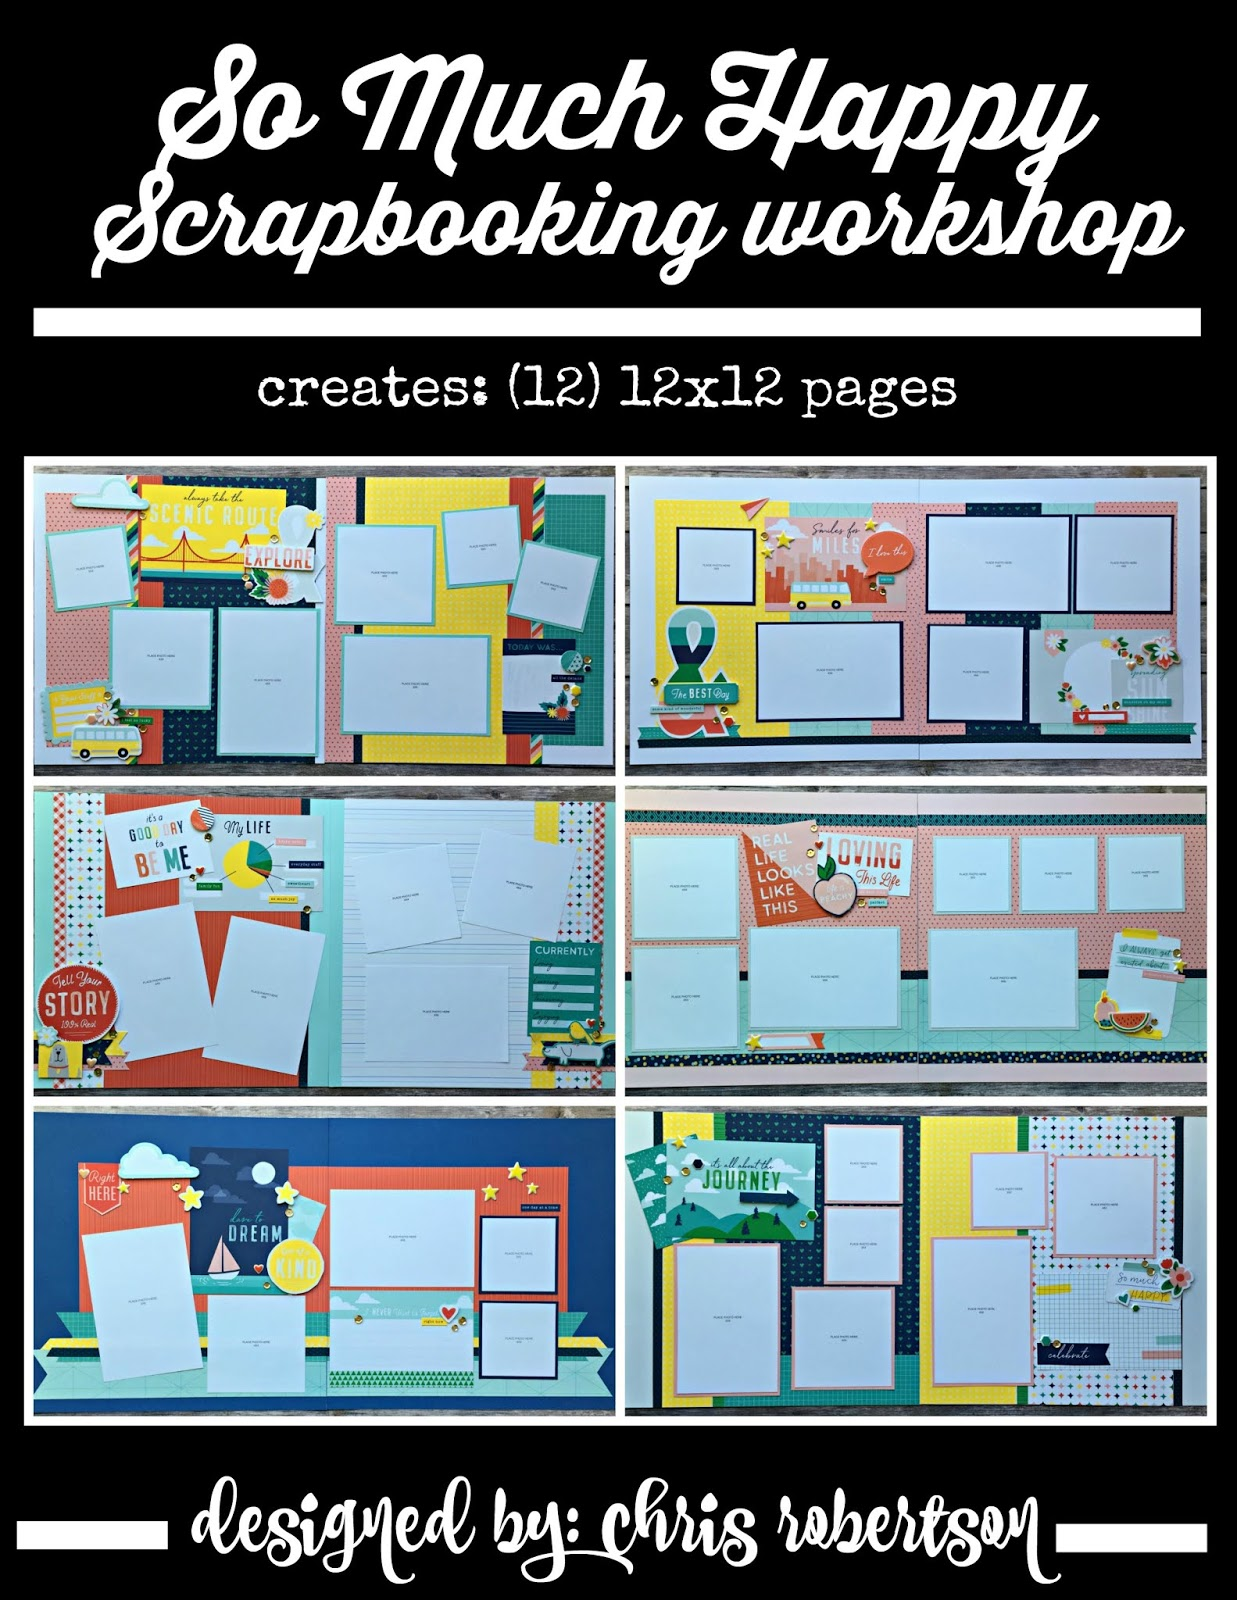 So Much Happy Scrapbooking Workshop